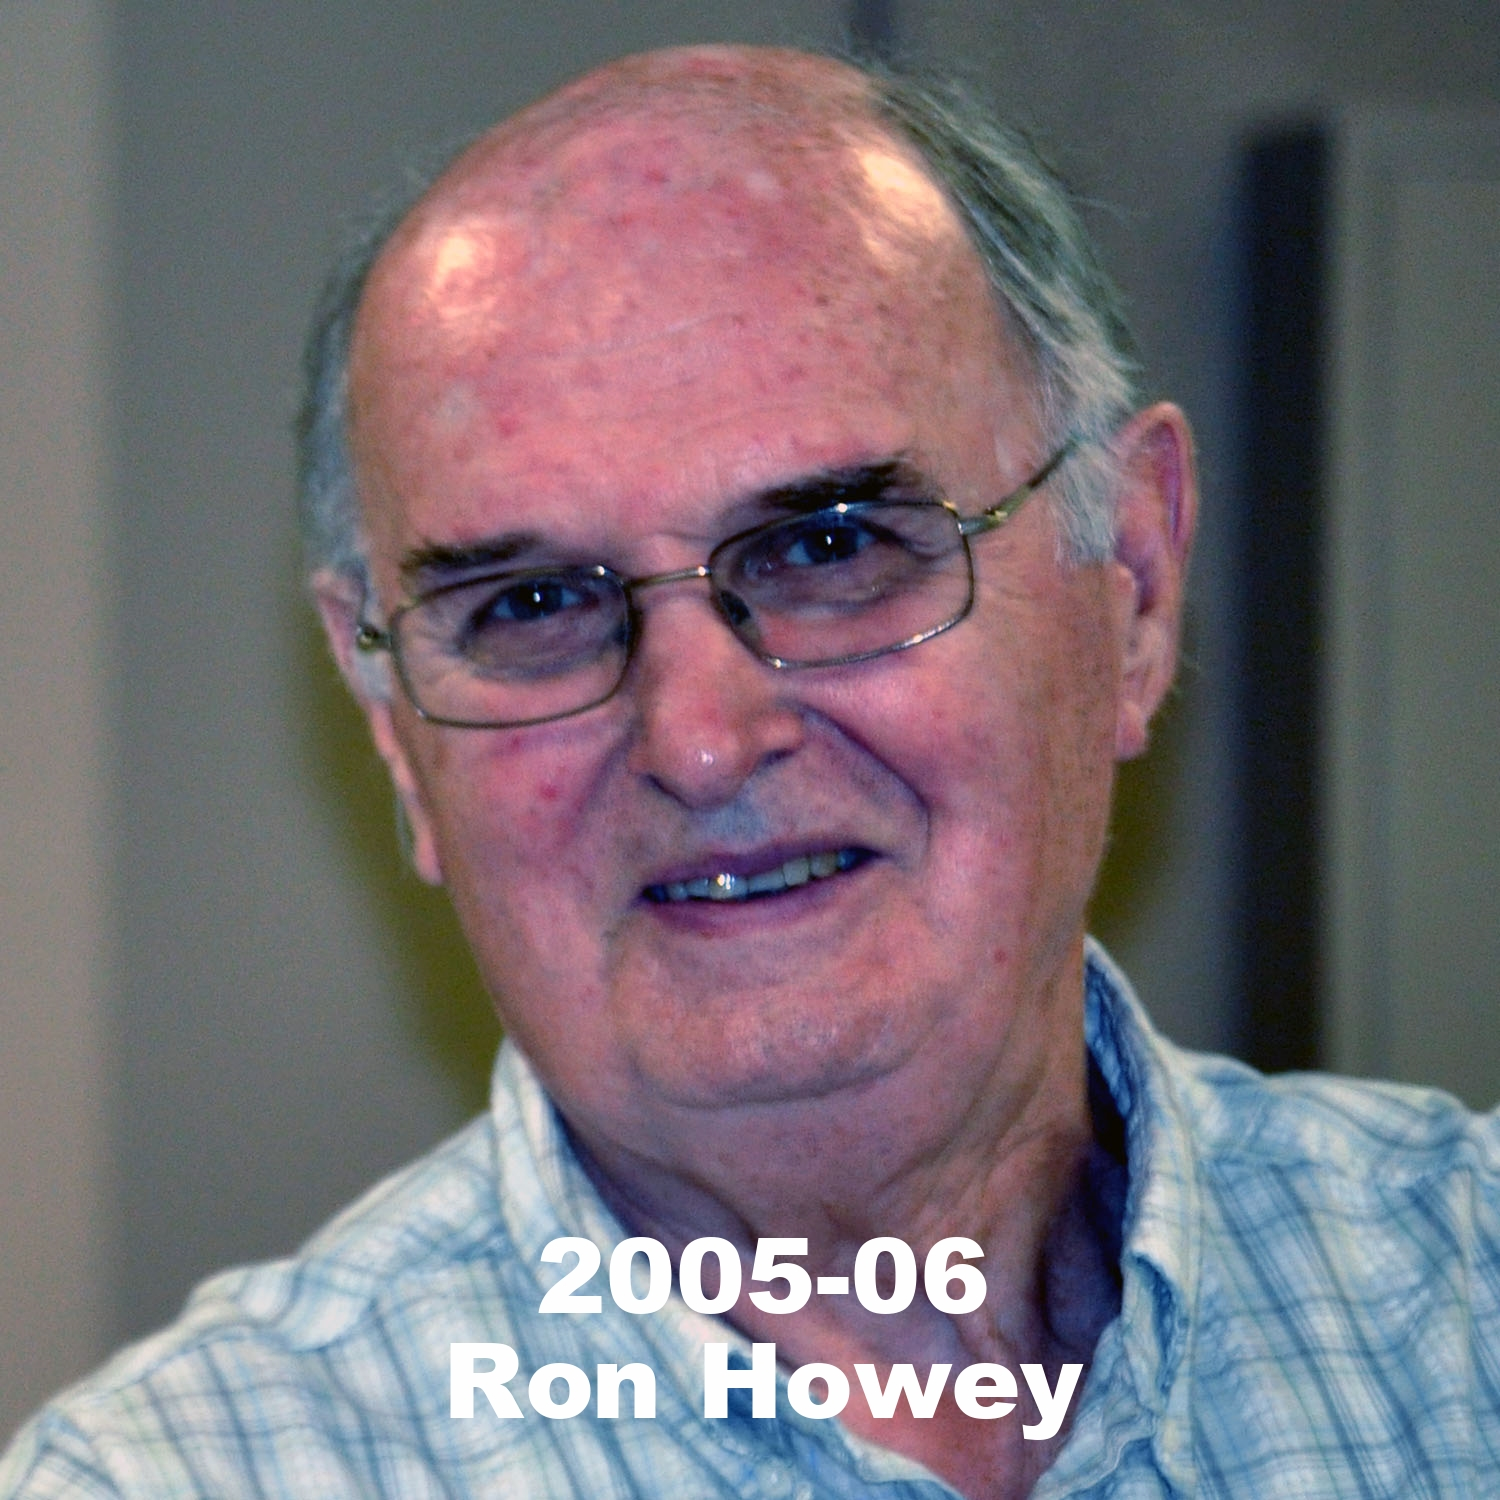 2005-06 Ron Howey.JPG